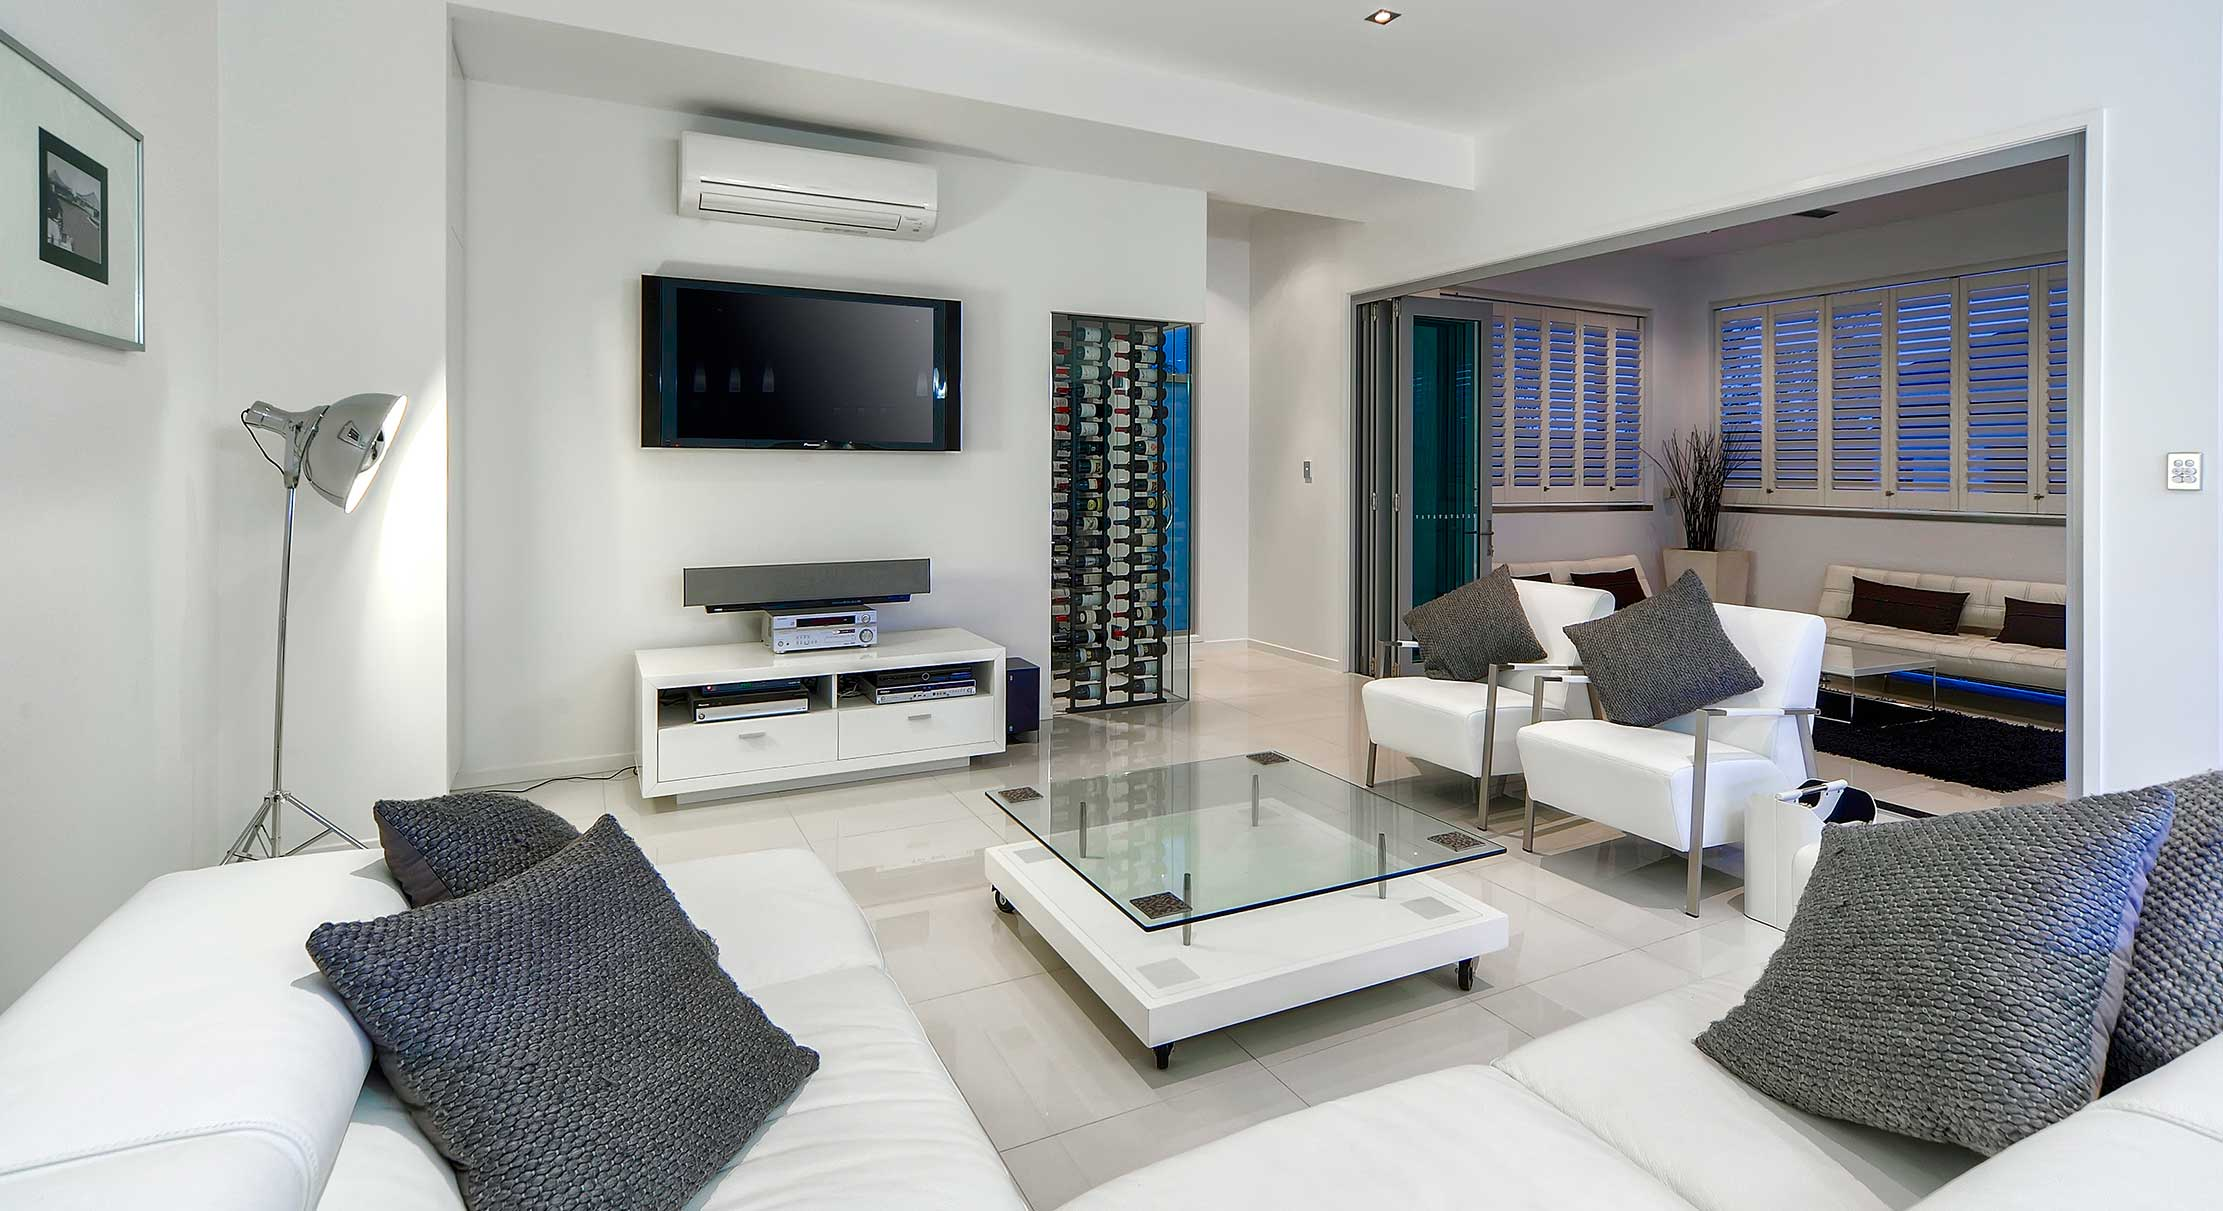 portfolio-1-slider-image-8-tv-entertainment-area-hamilton-gary-cramb-constructions-brisbane